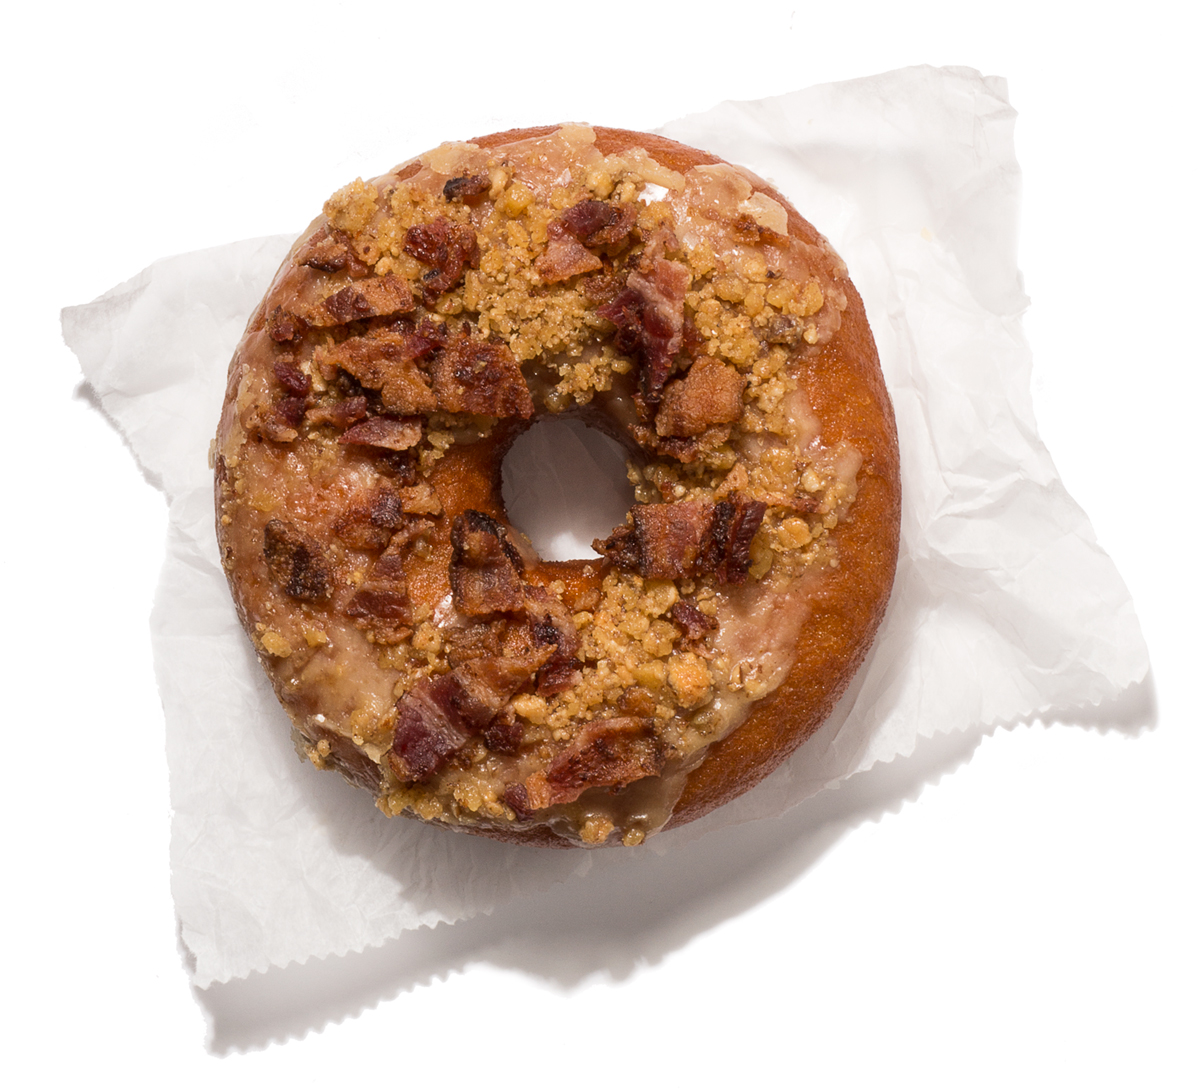 Island Creek Oyster Bar's new brown butter bacon doughnut with pecan toffee crumble. Photo by Toan Trinh